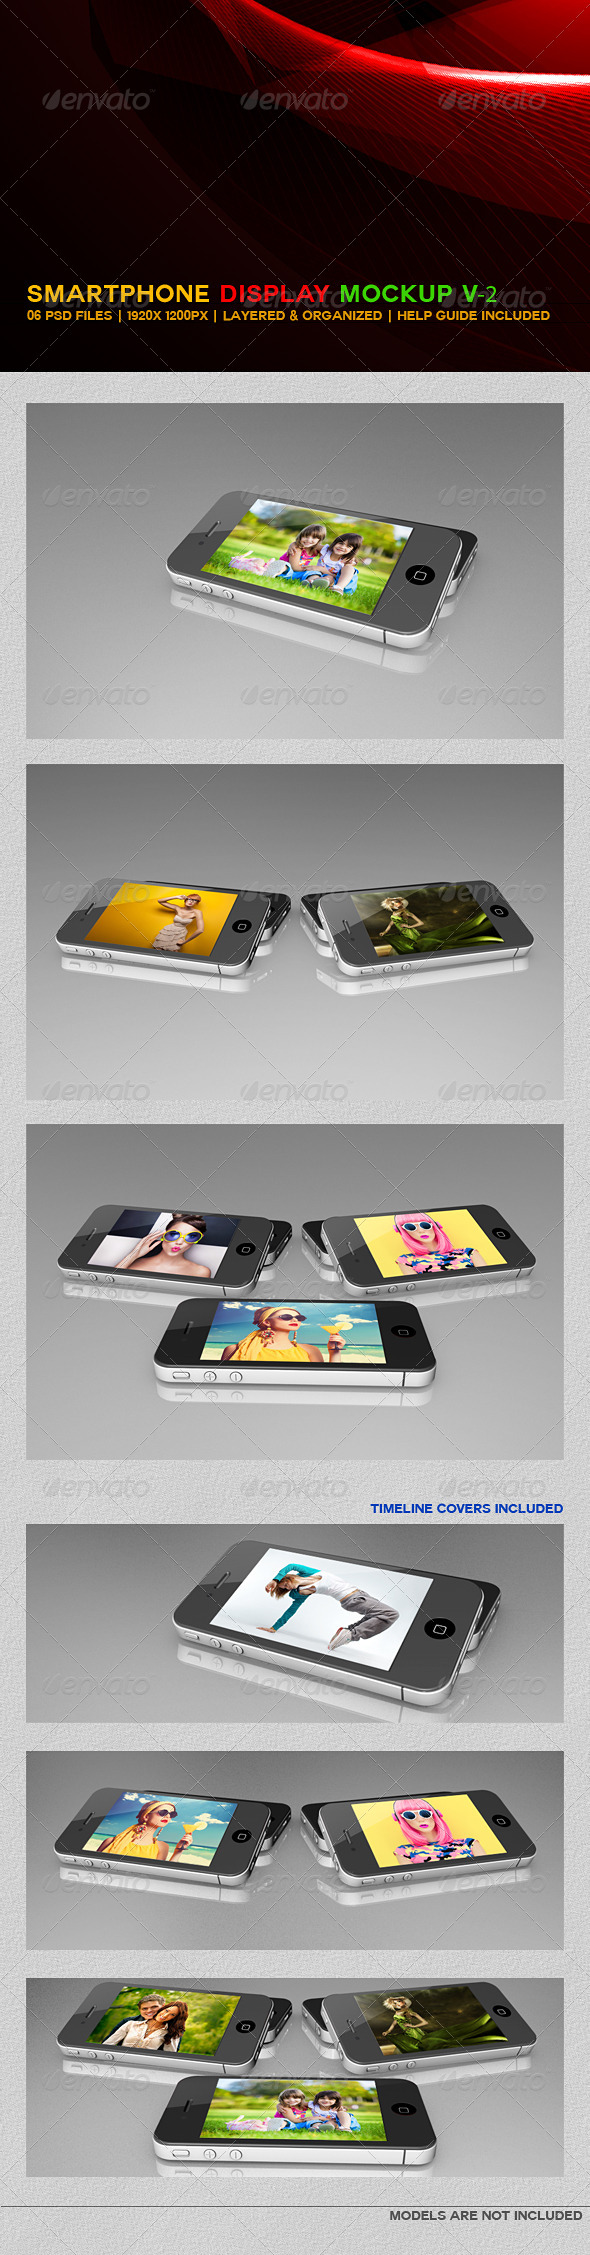 Smartphone Display Mockup V2 - Mobile Displays